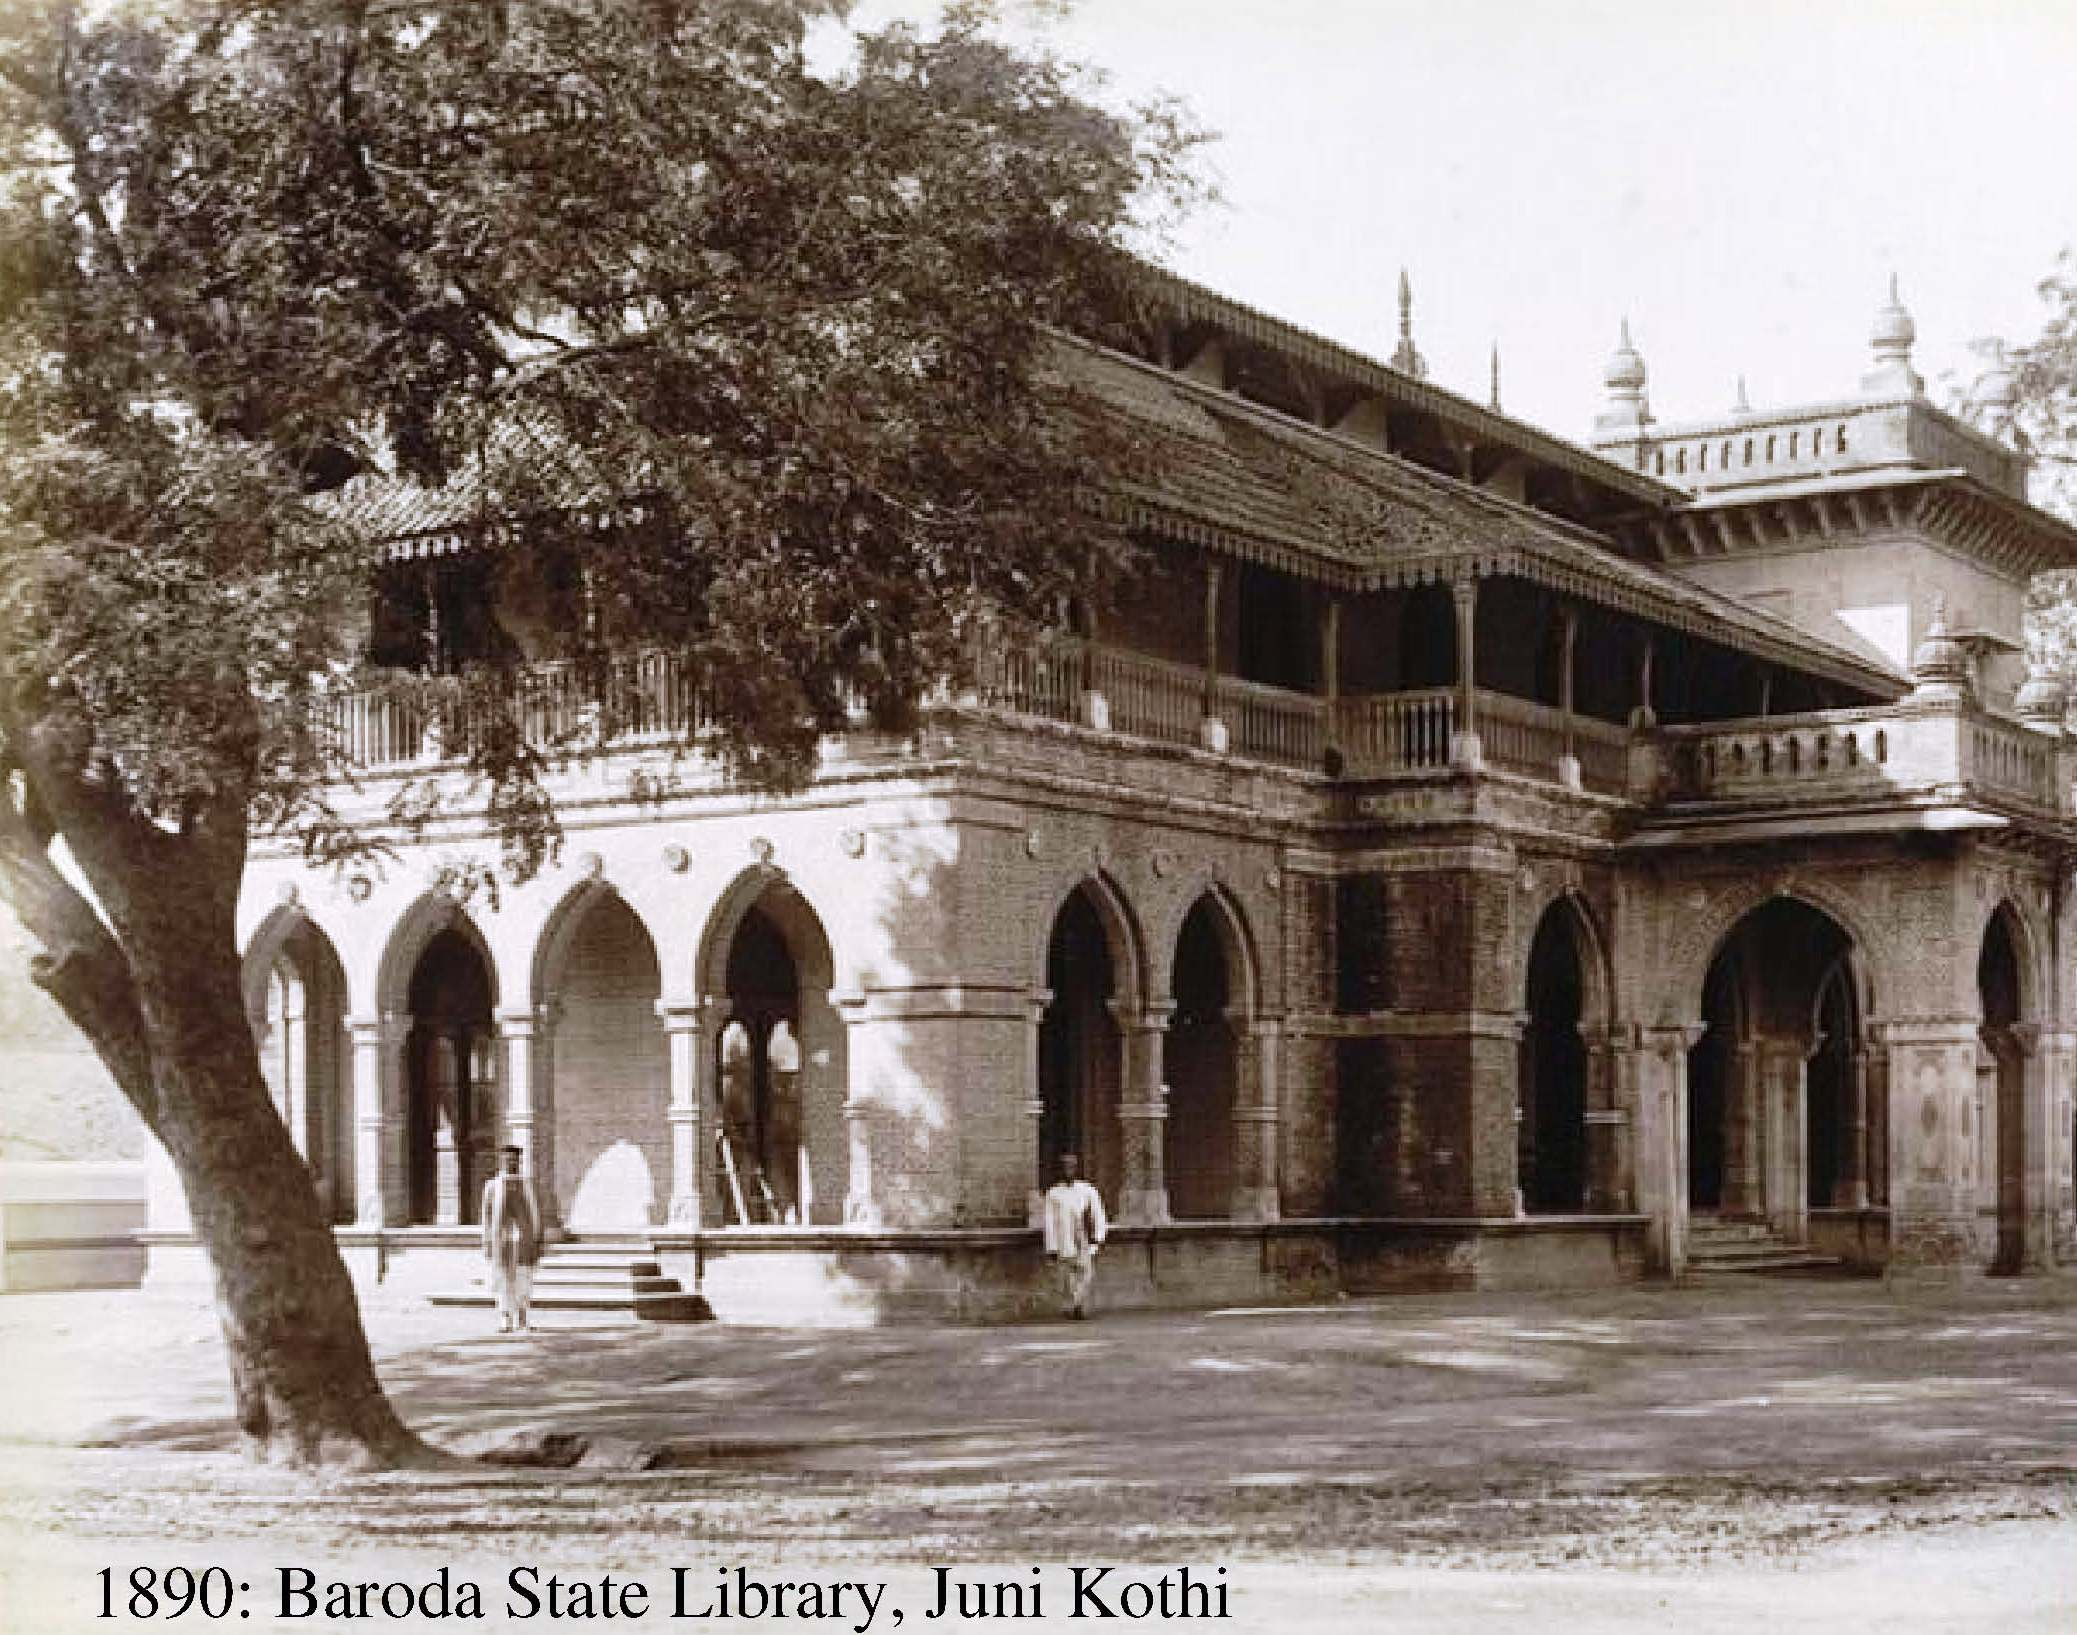 1890: Baroda State Library